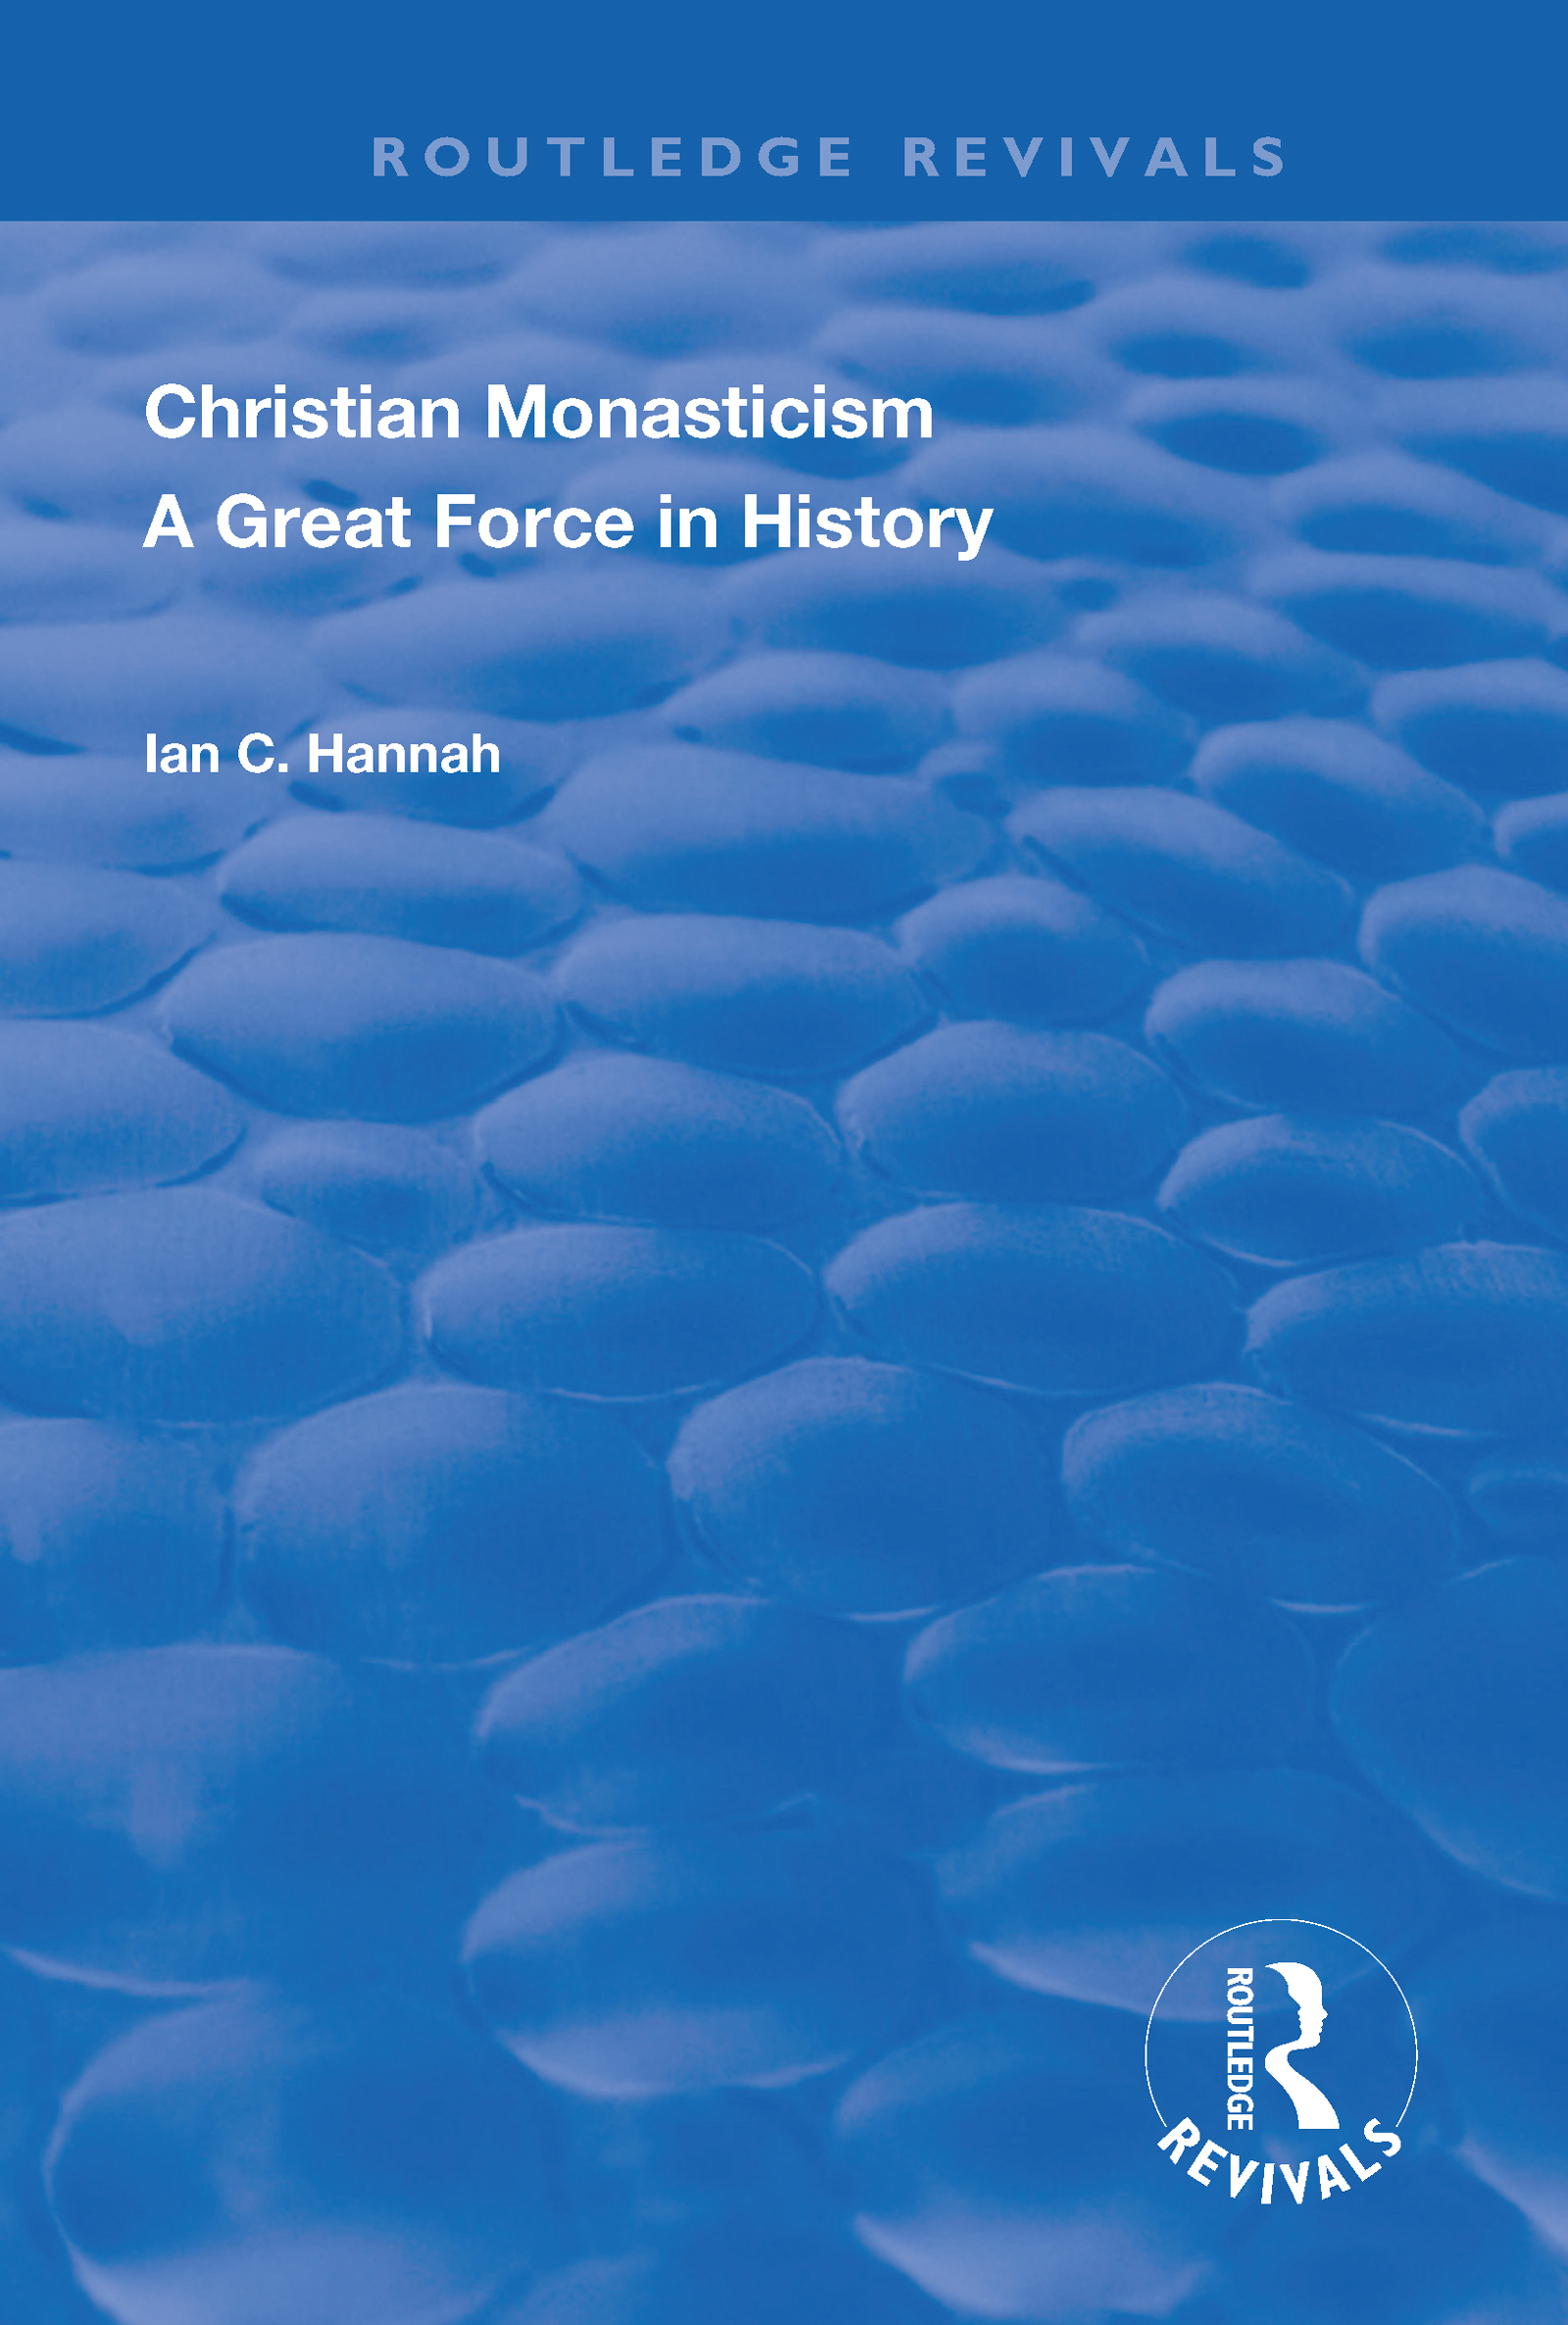 Revival: Christain Monasticism - A Great Force in History (1925)